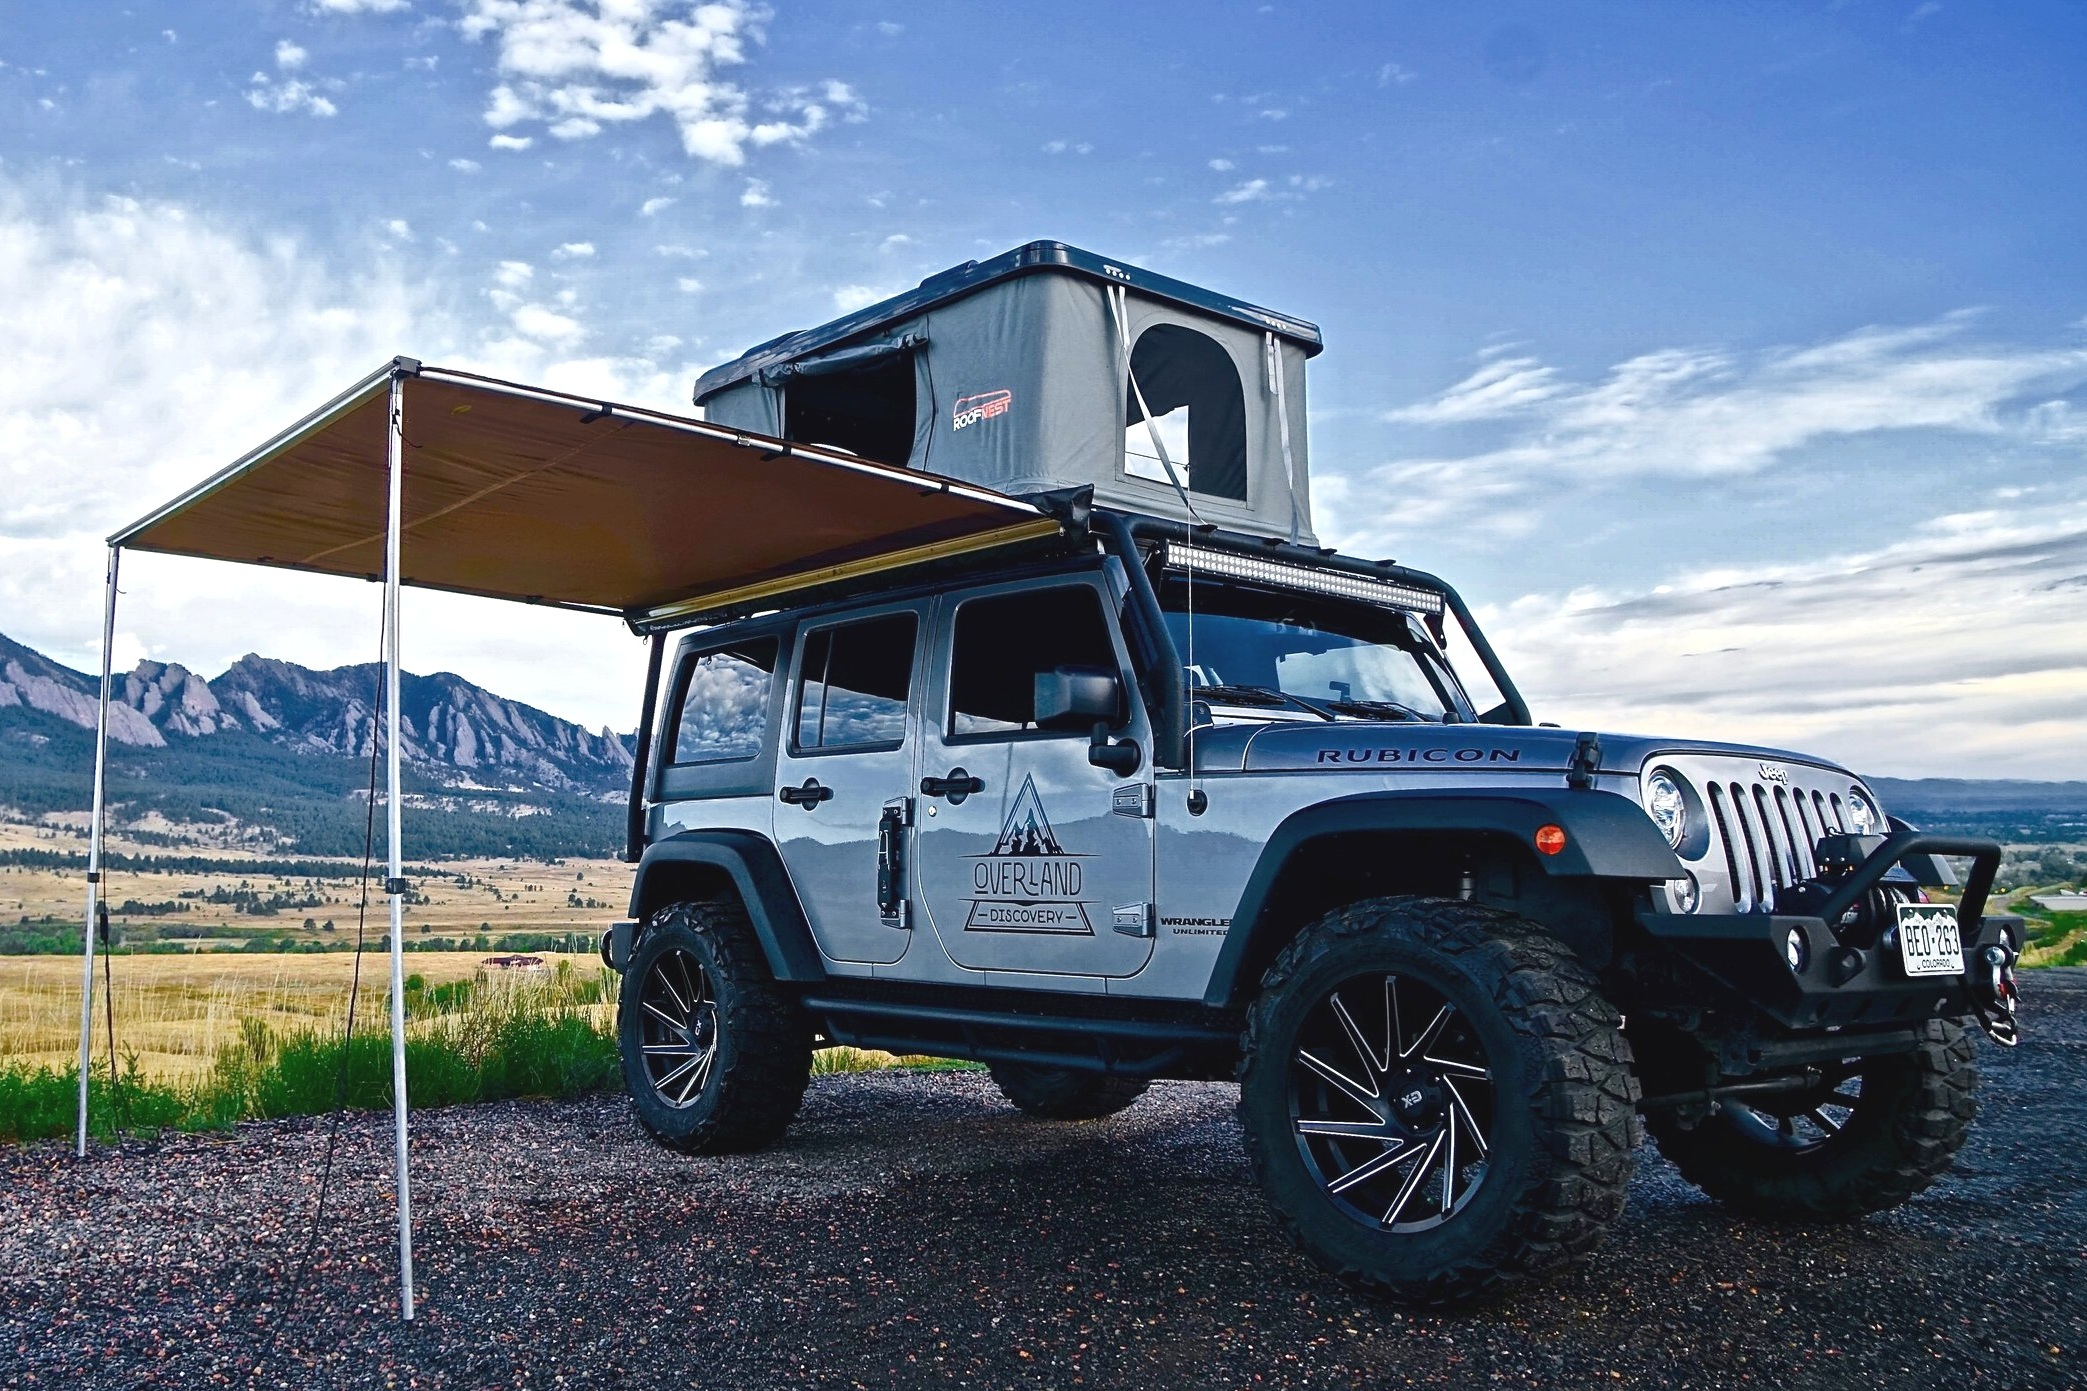 Jeep Wrangler Rubicon Camper Rental Roof Top Tent